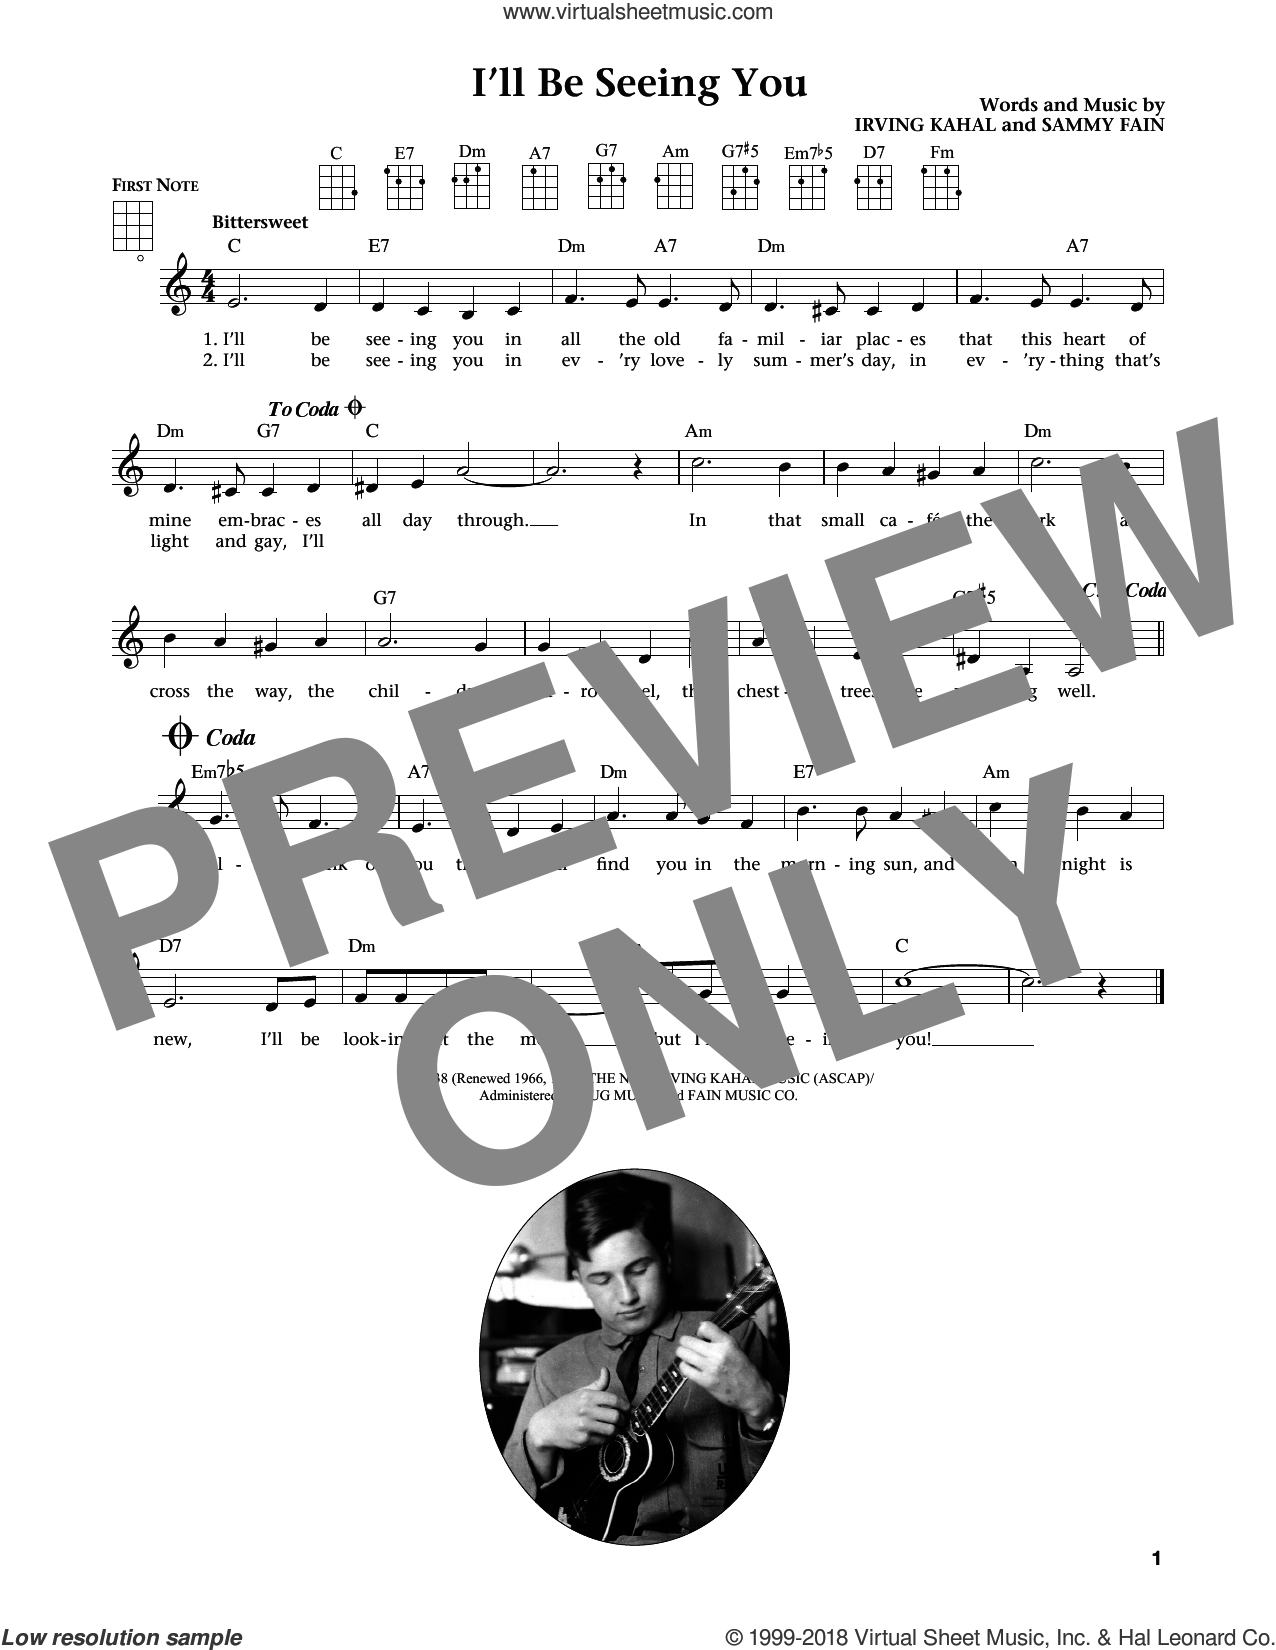 I'll Be Seeing You (from The Daily Ukulele) (arr. Liz and Jim Beloff) sheet music for ukulele by Sammy Fain, Jim Beloff, Liz Beloff and Irving Kahal, intermediate skill level